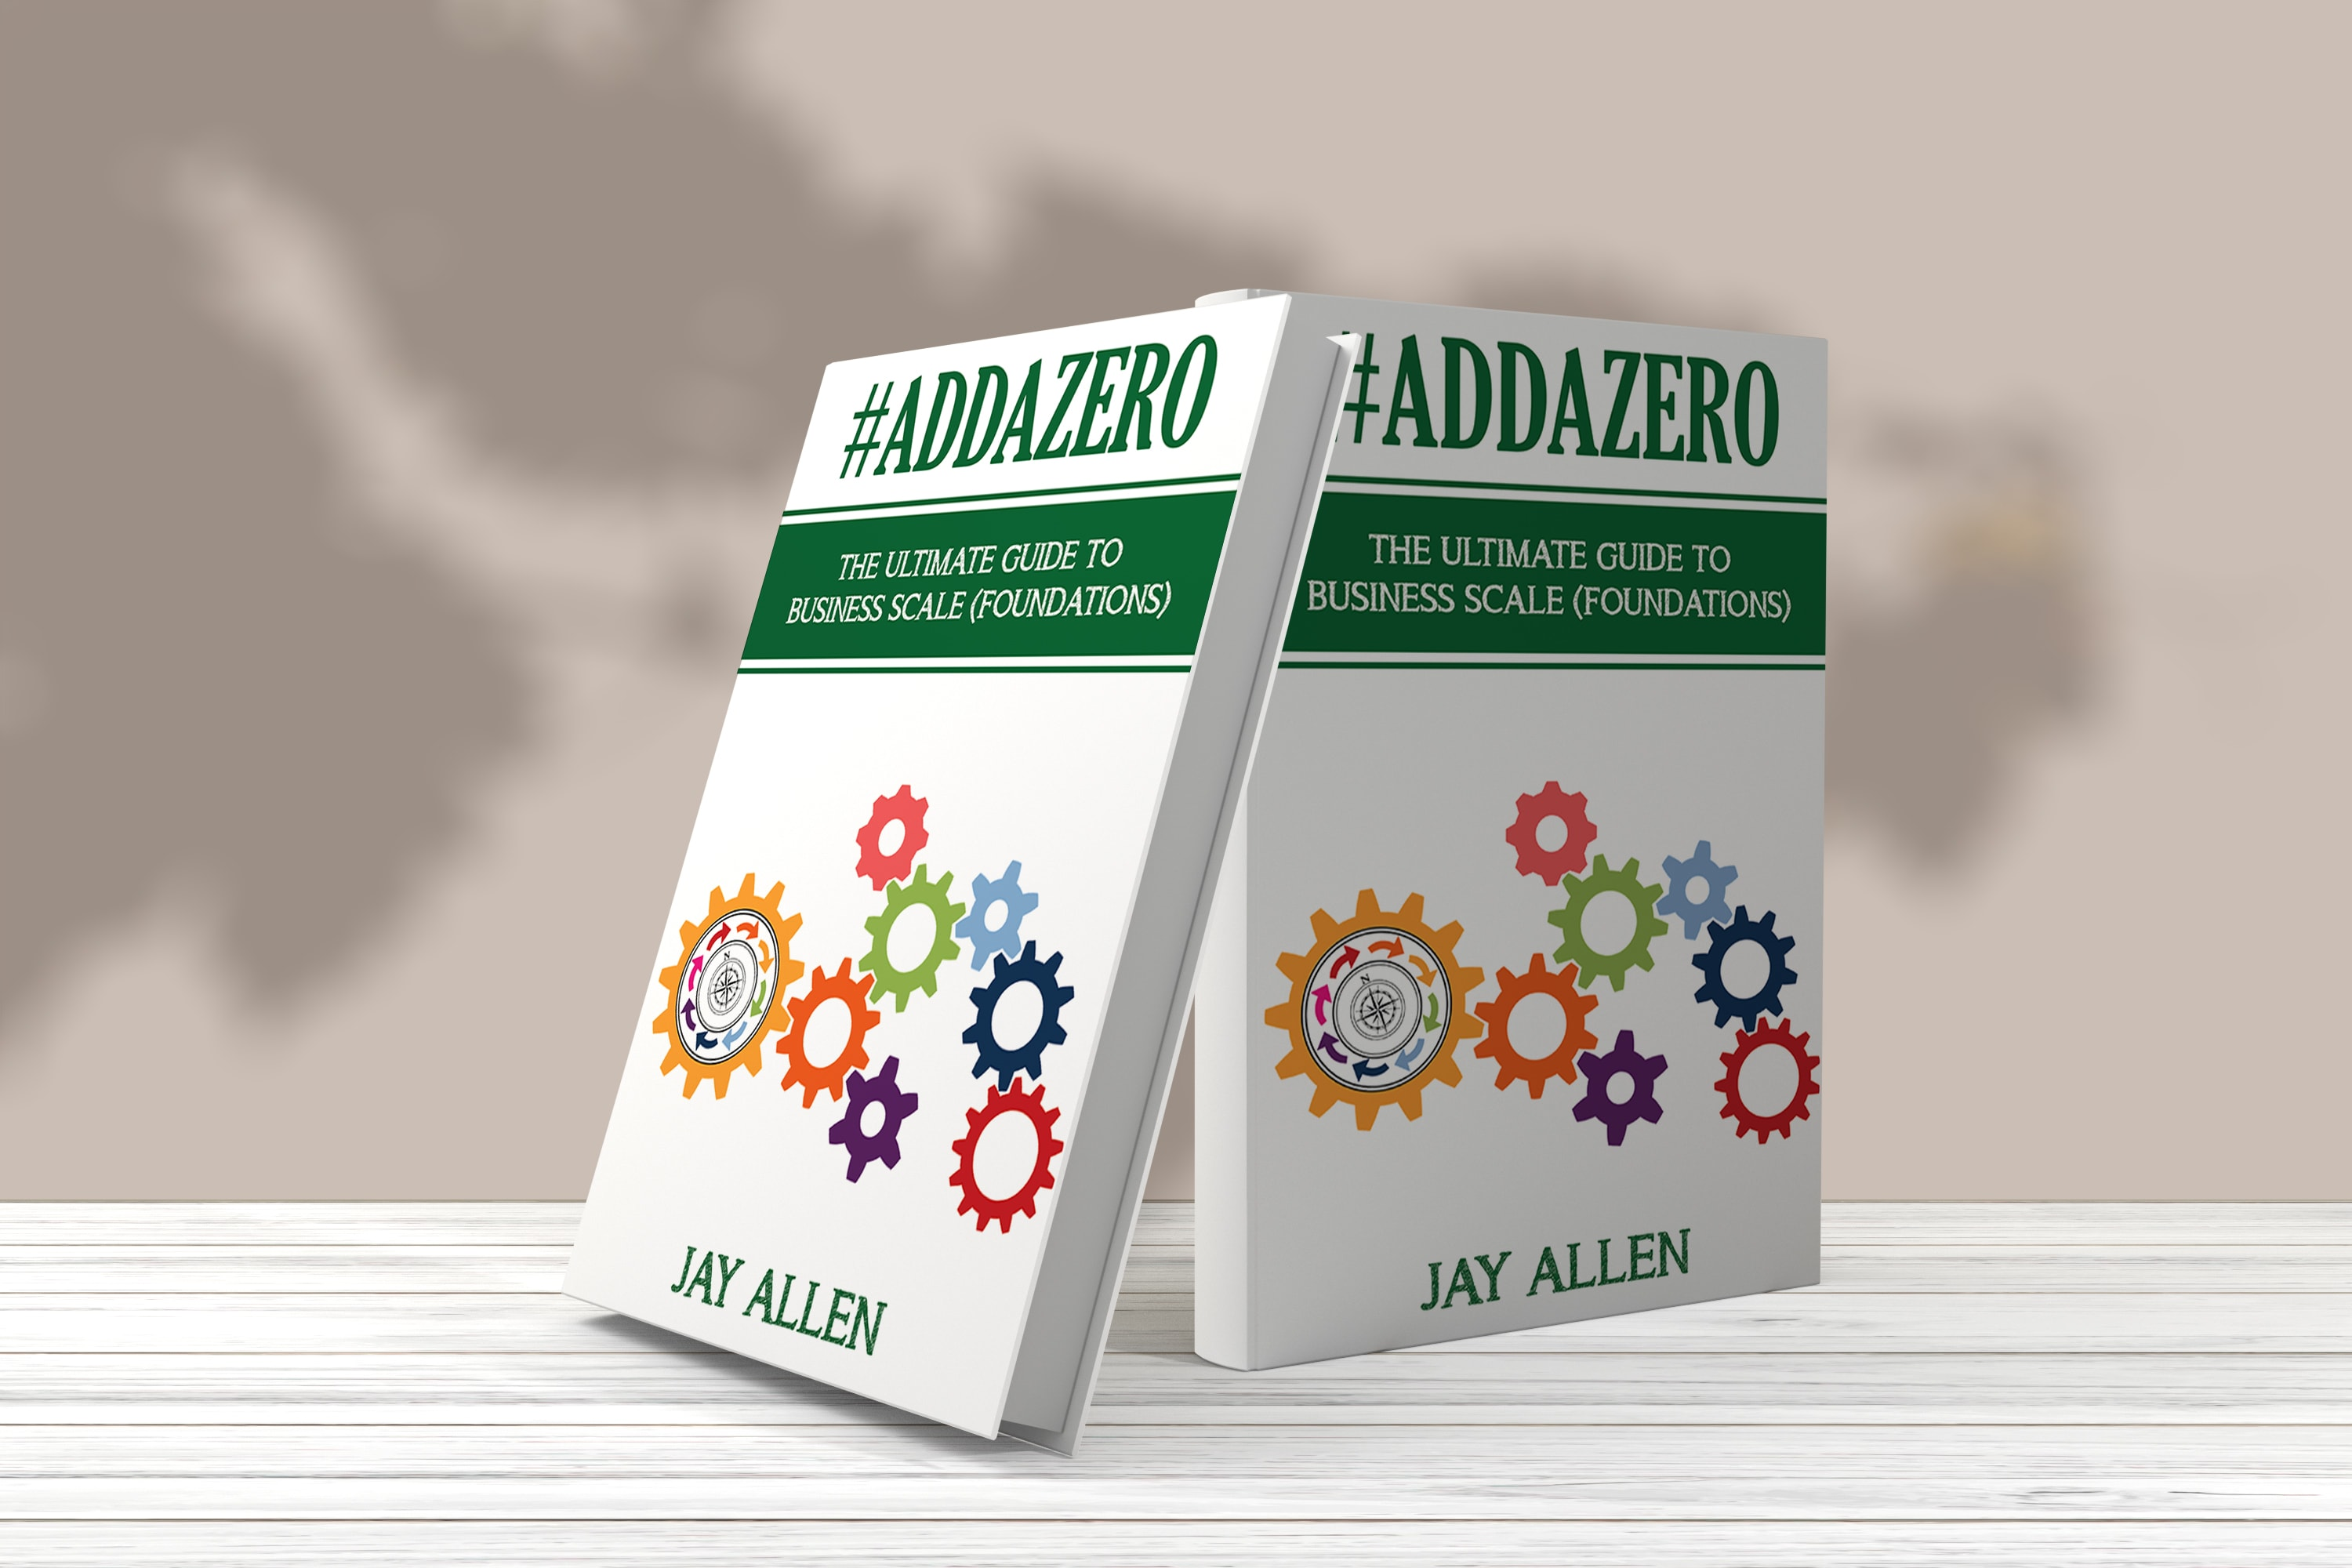 ADDAZERO The Ultimate Guide to Sustainable Business Scale